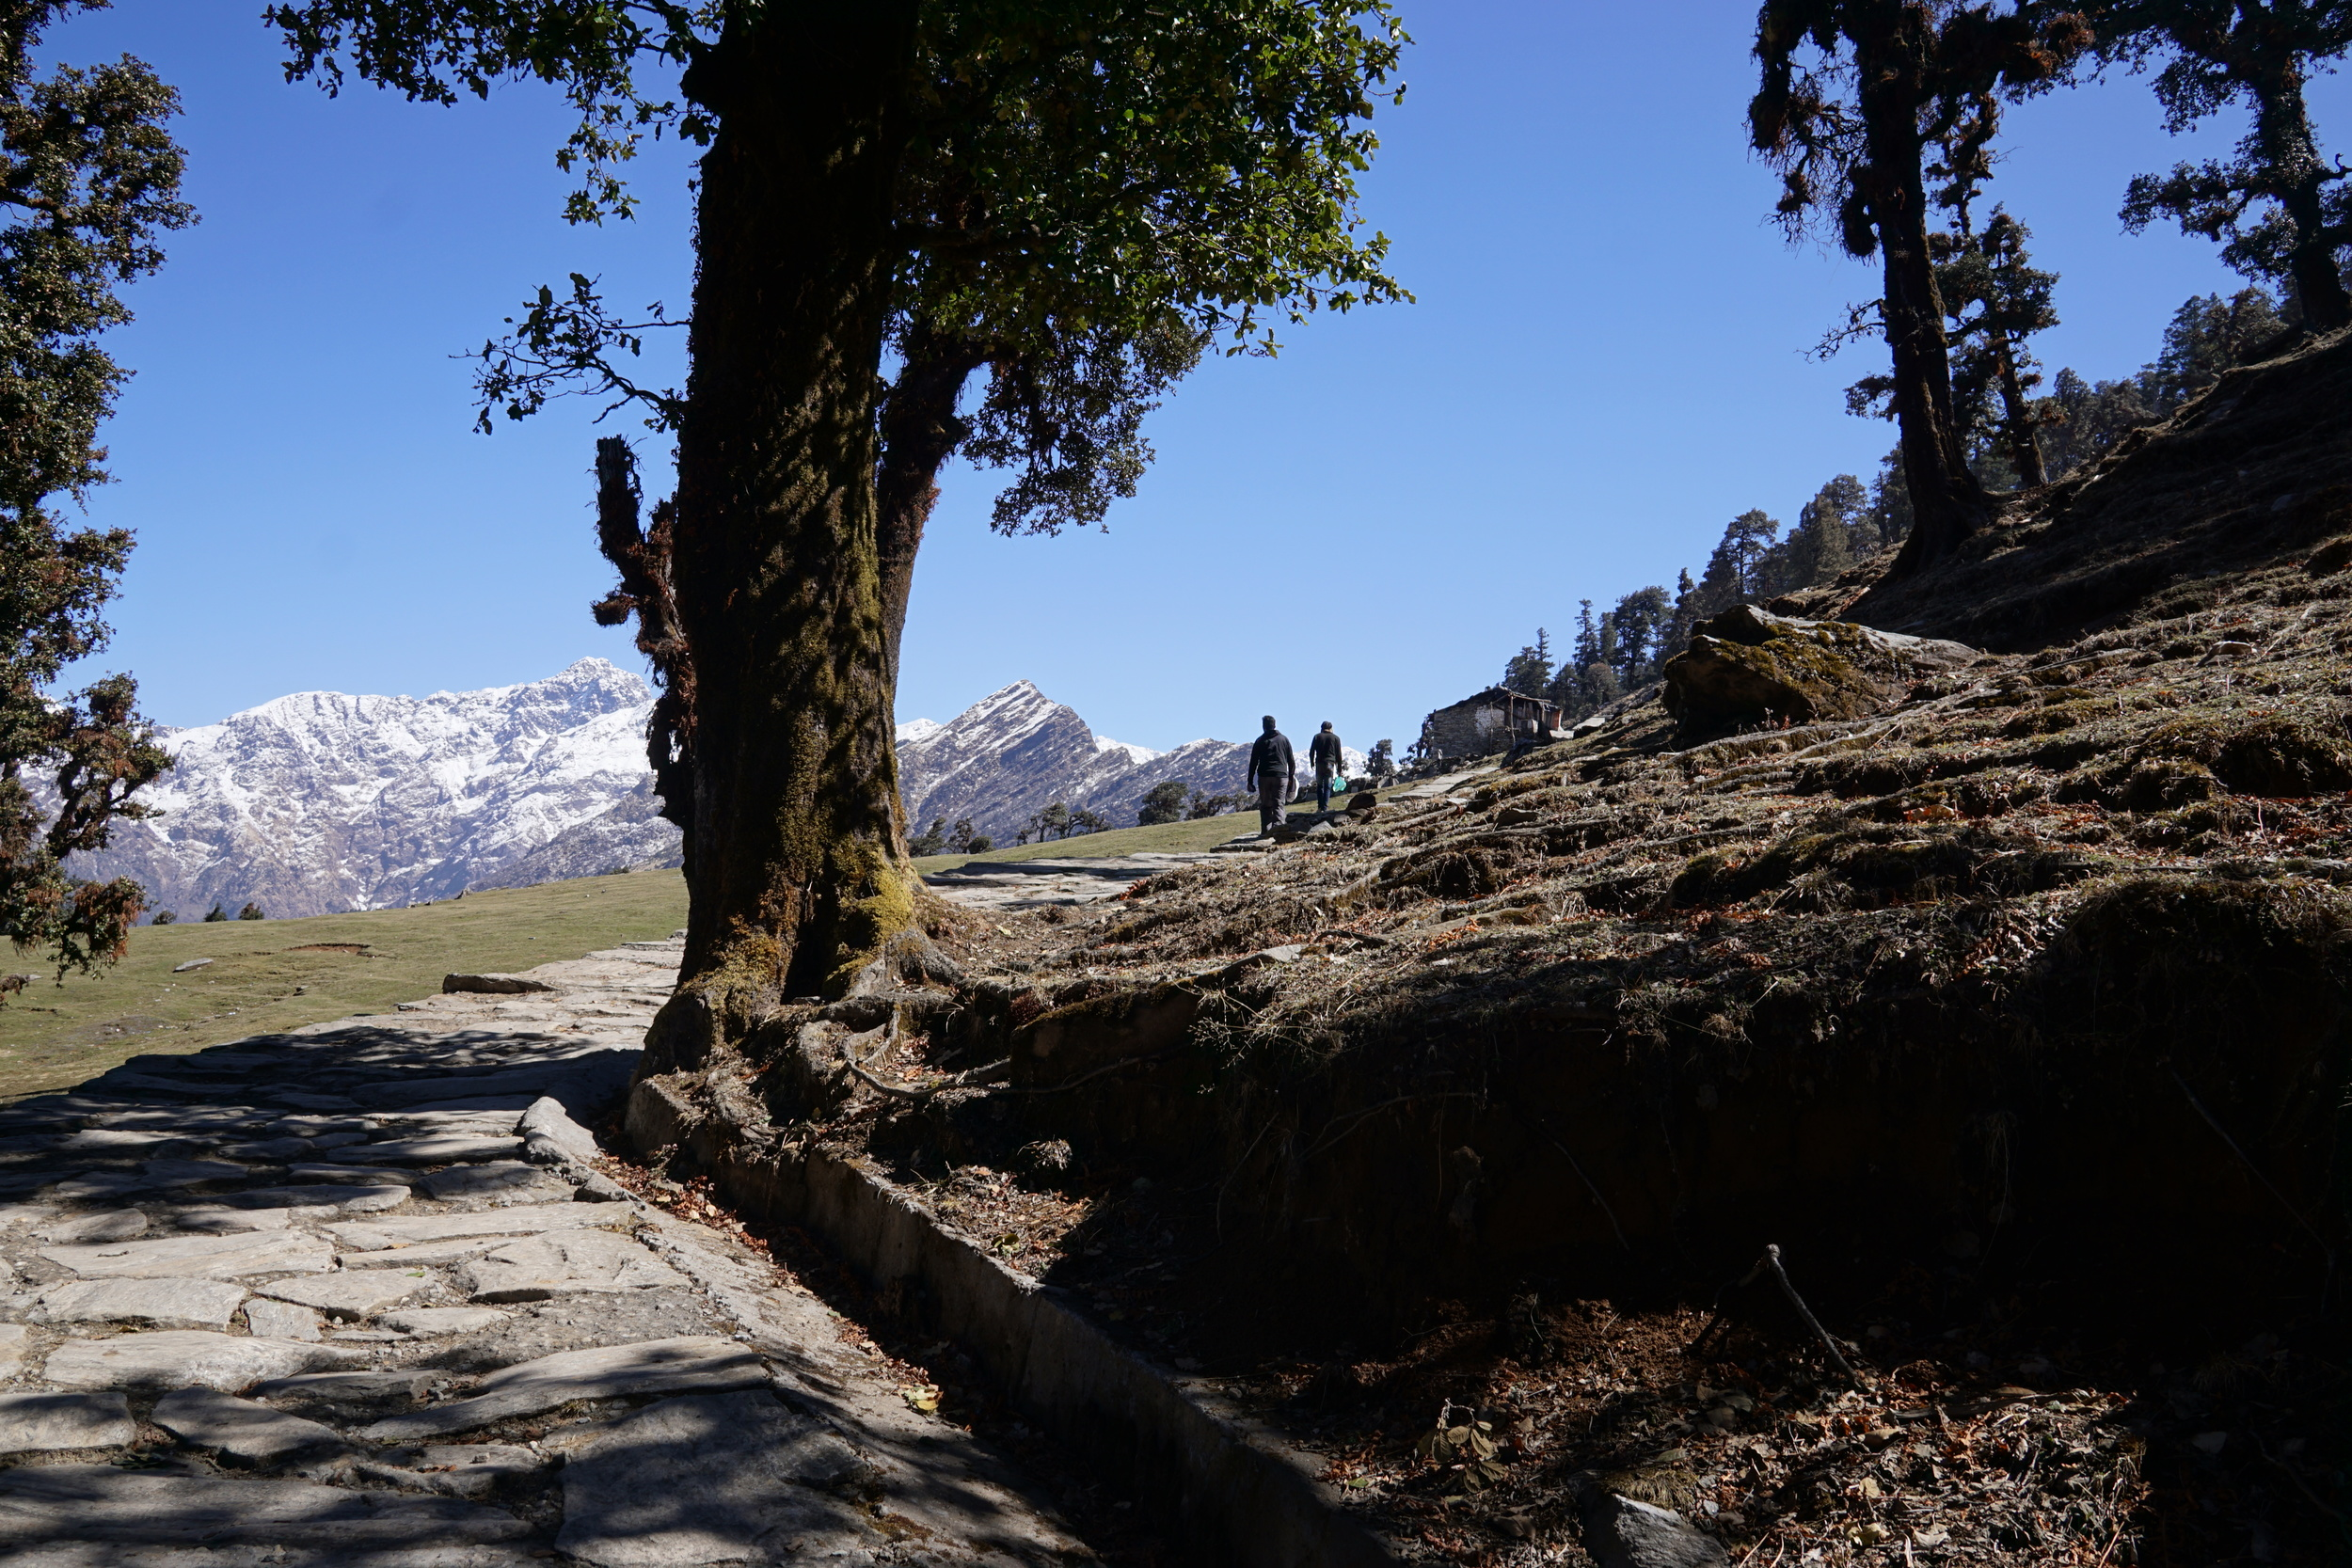 A paved path lined with perfect green trees illuminated by the peaks in the horizon.